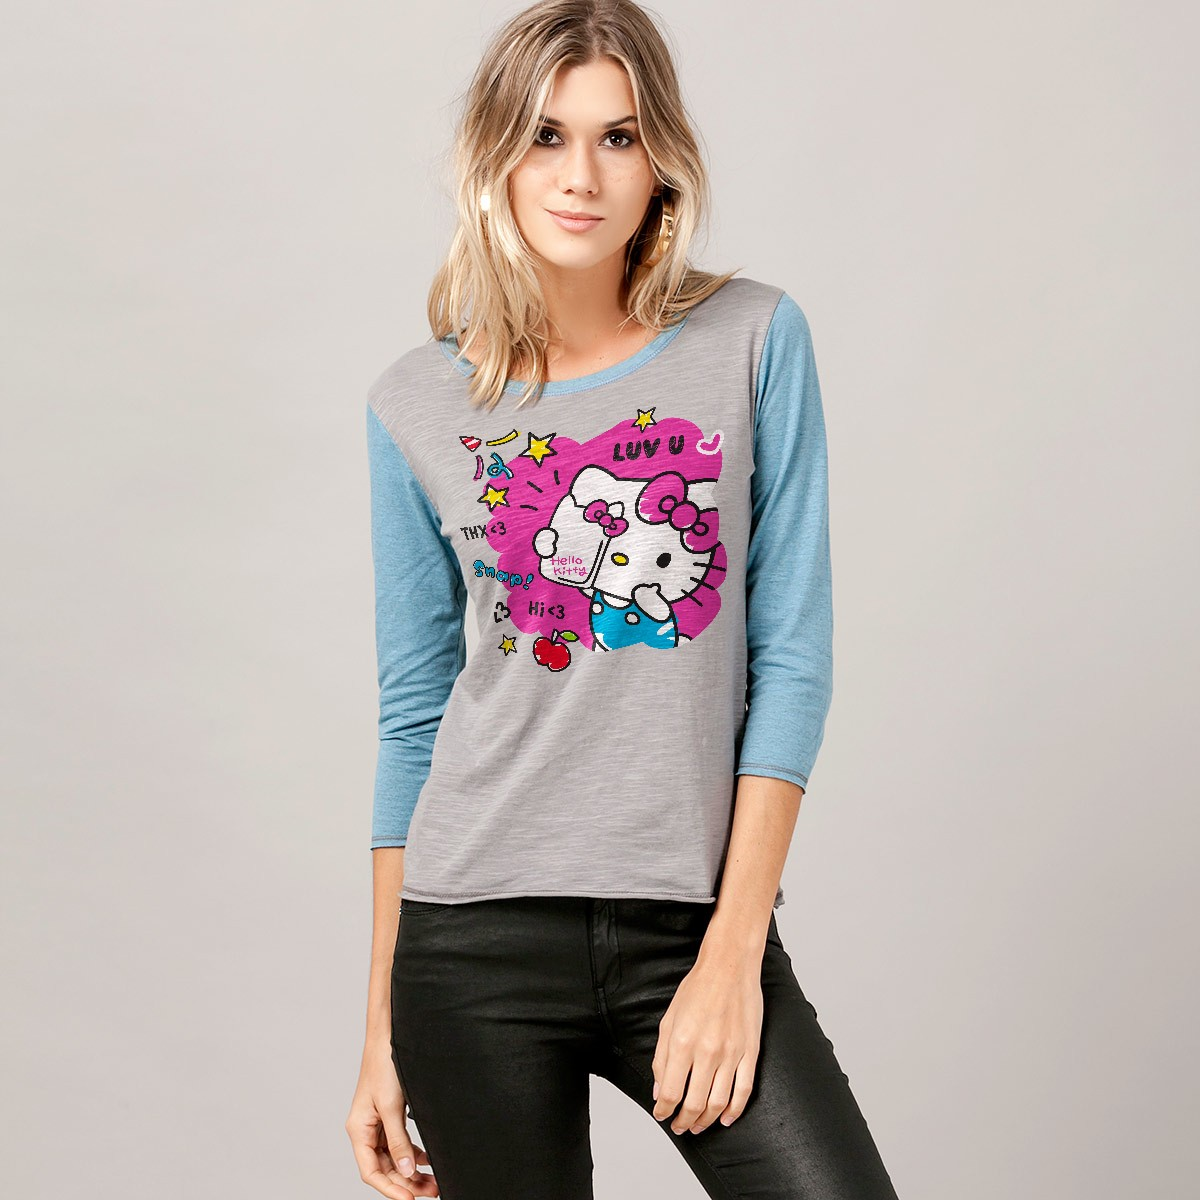 Camiseta Manga Longa Feminina Hello Kitty Snap